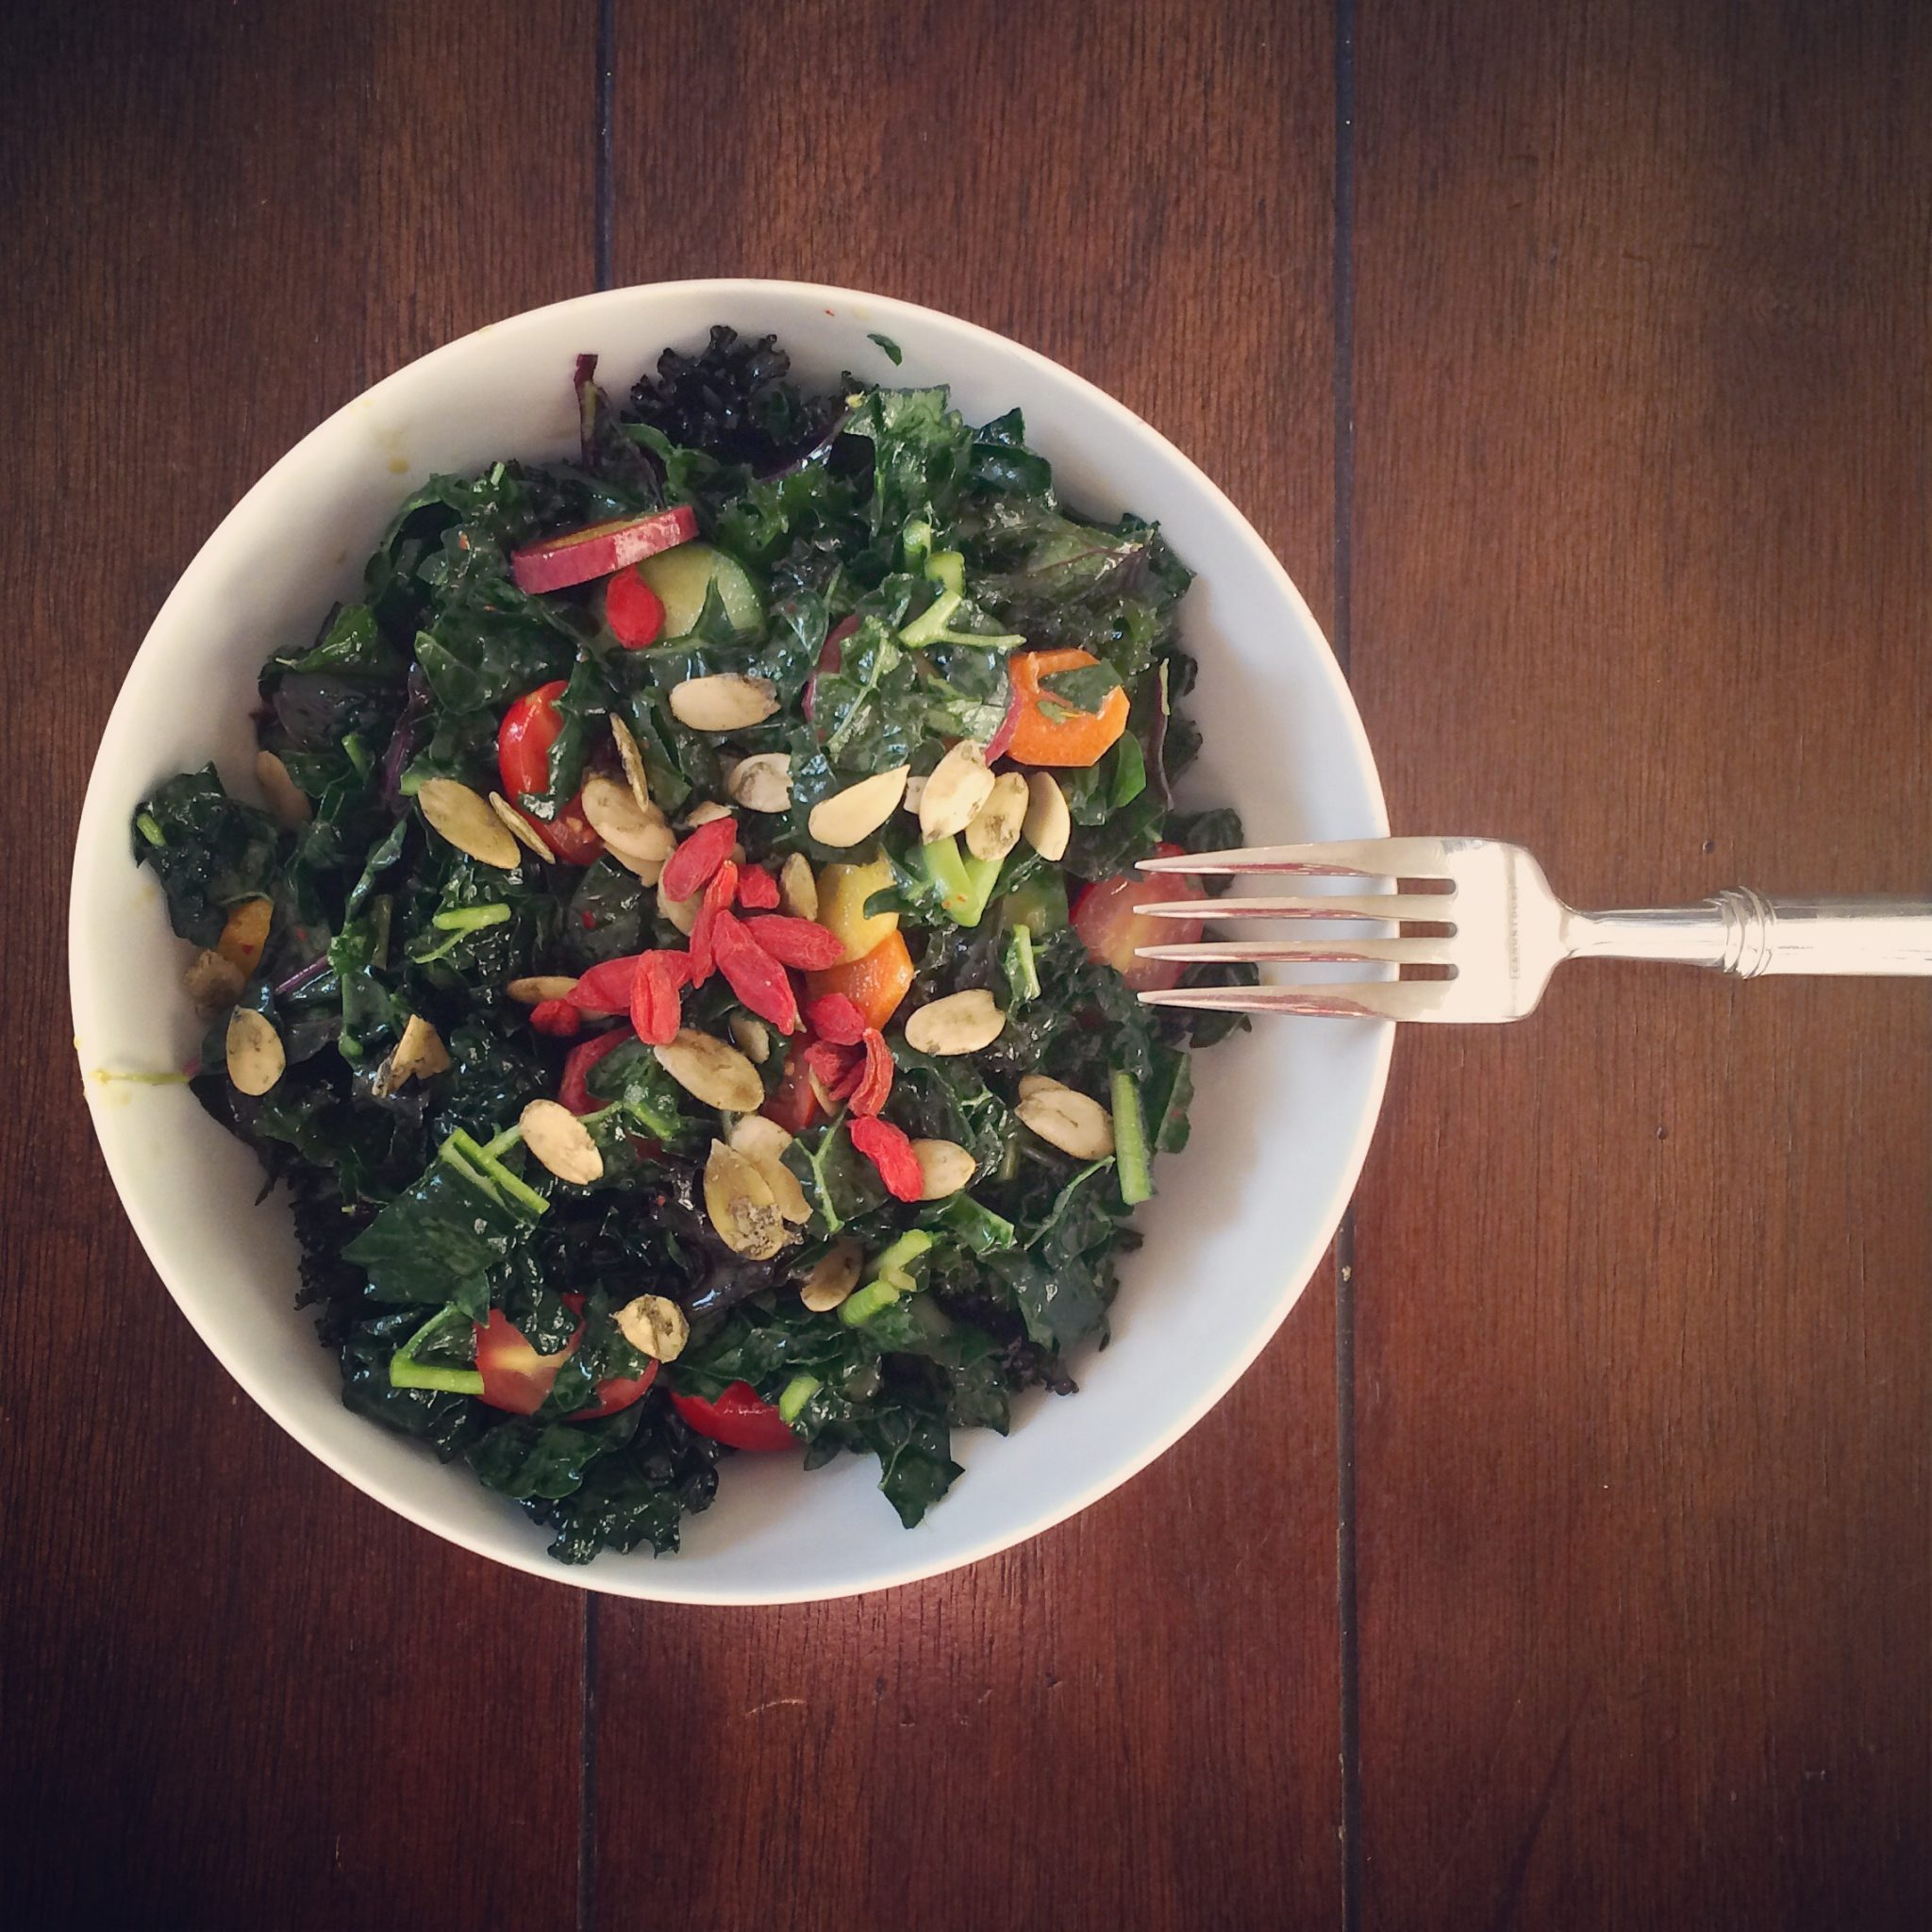 Go Green with Hot Salad!